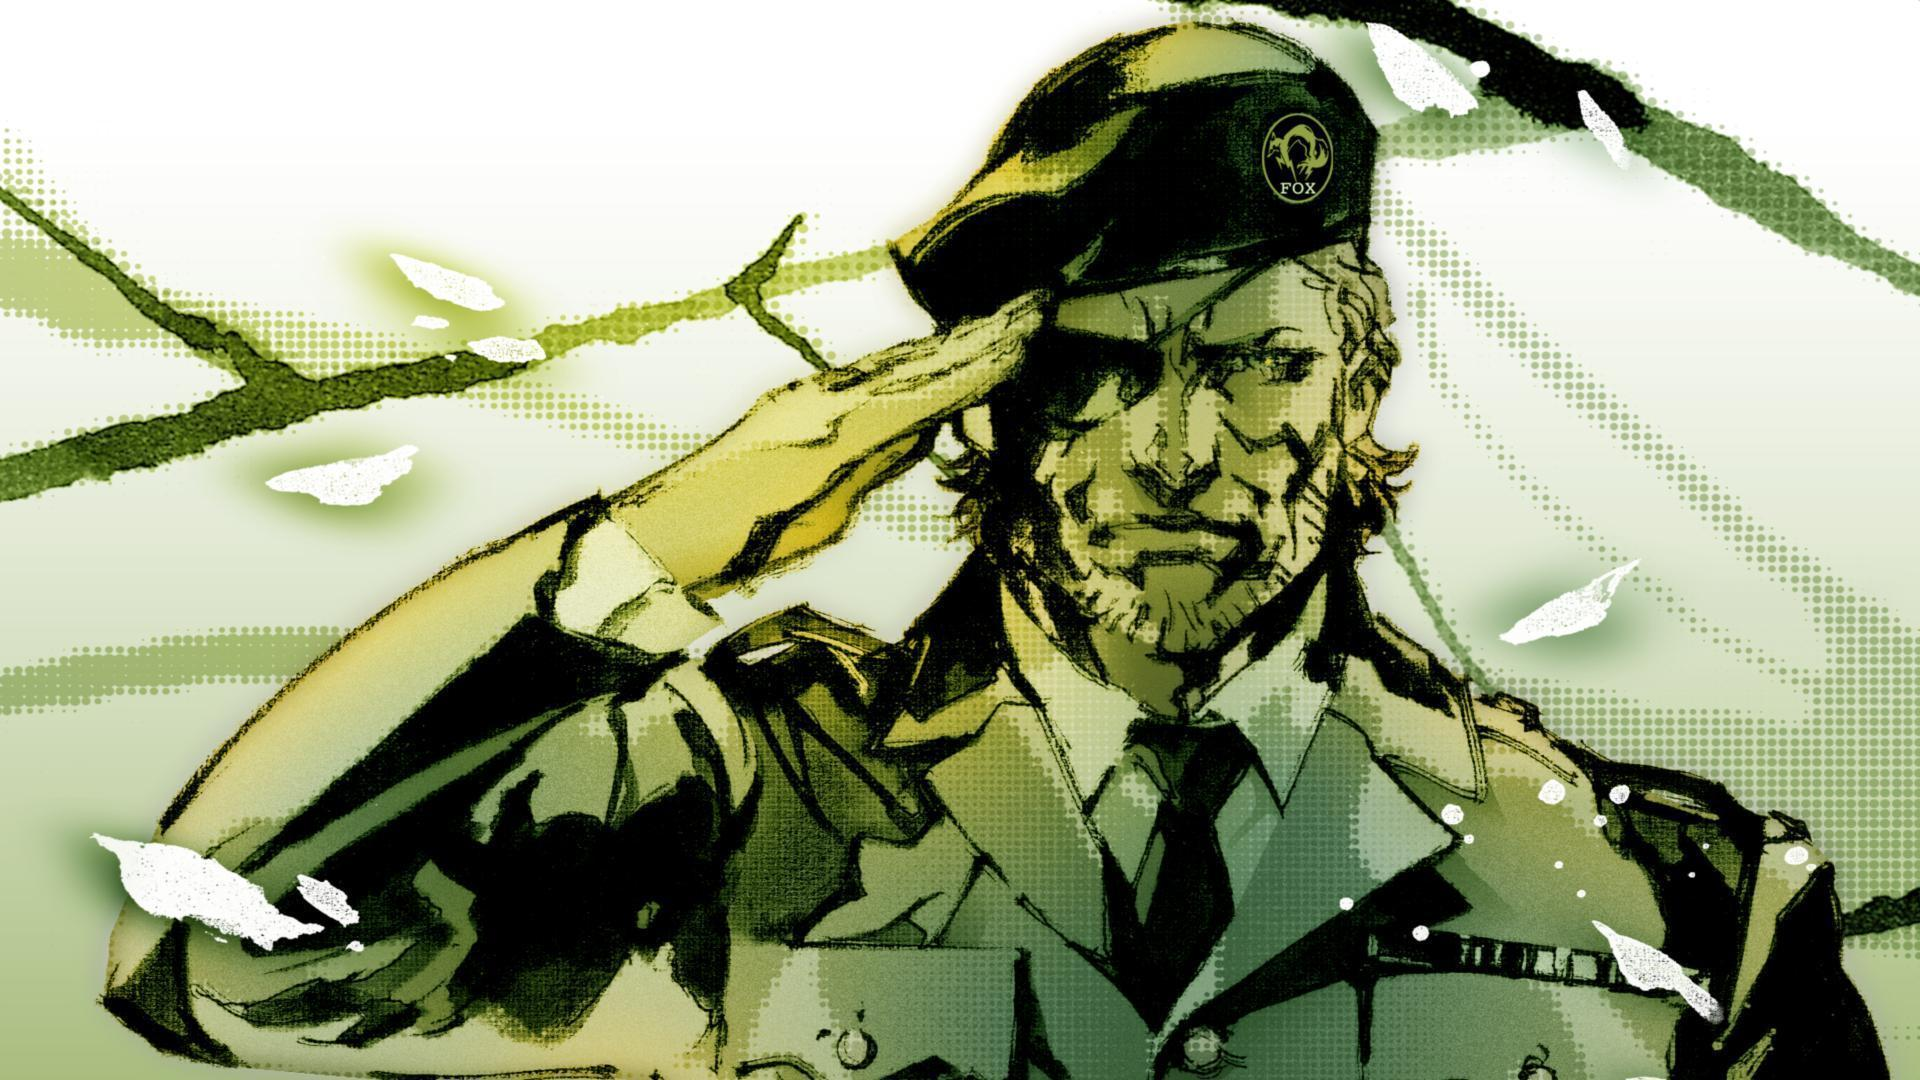 metal gear hd wallpapers - photo #34